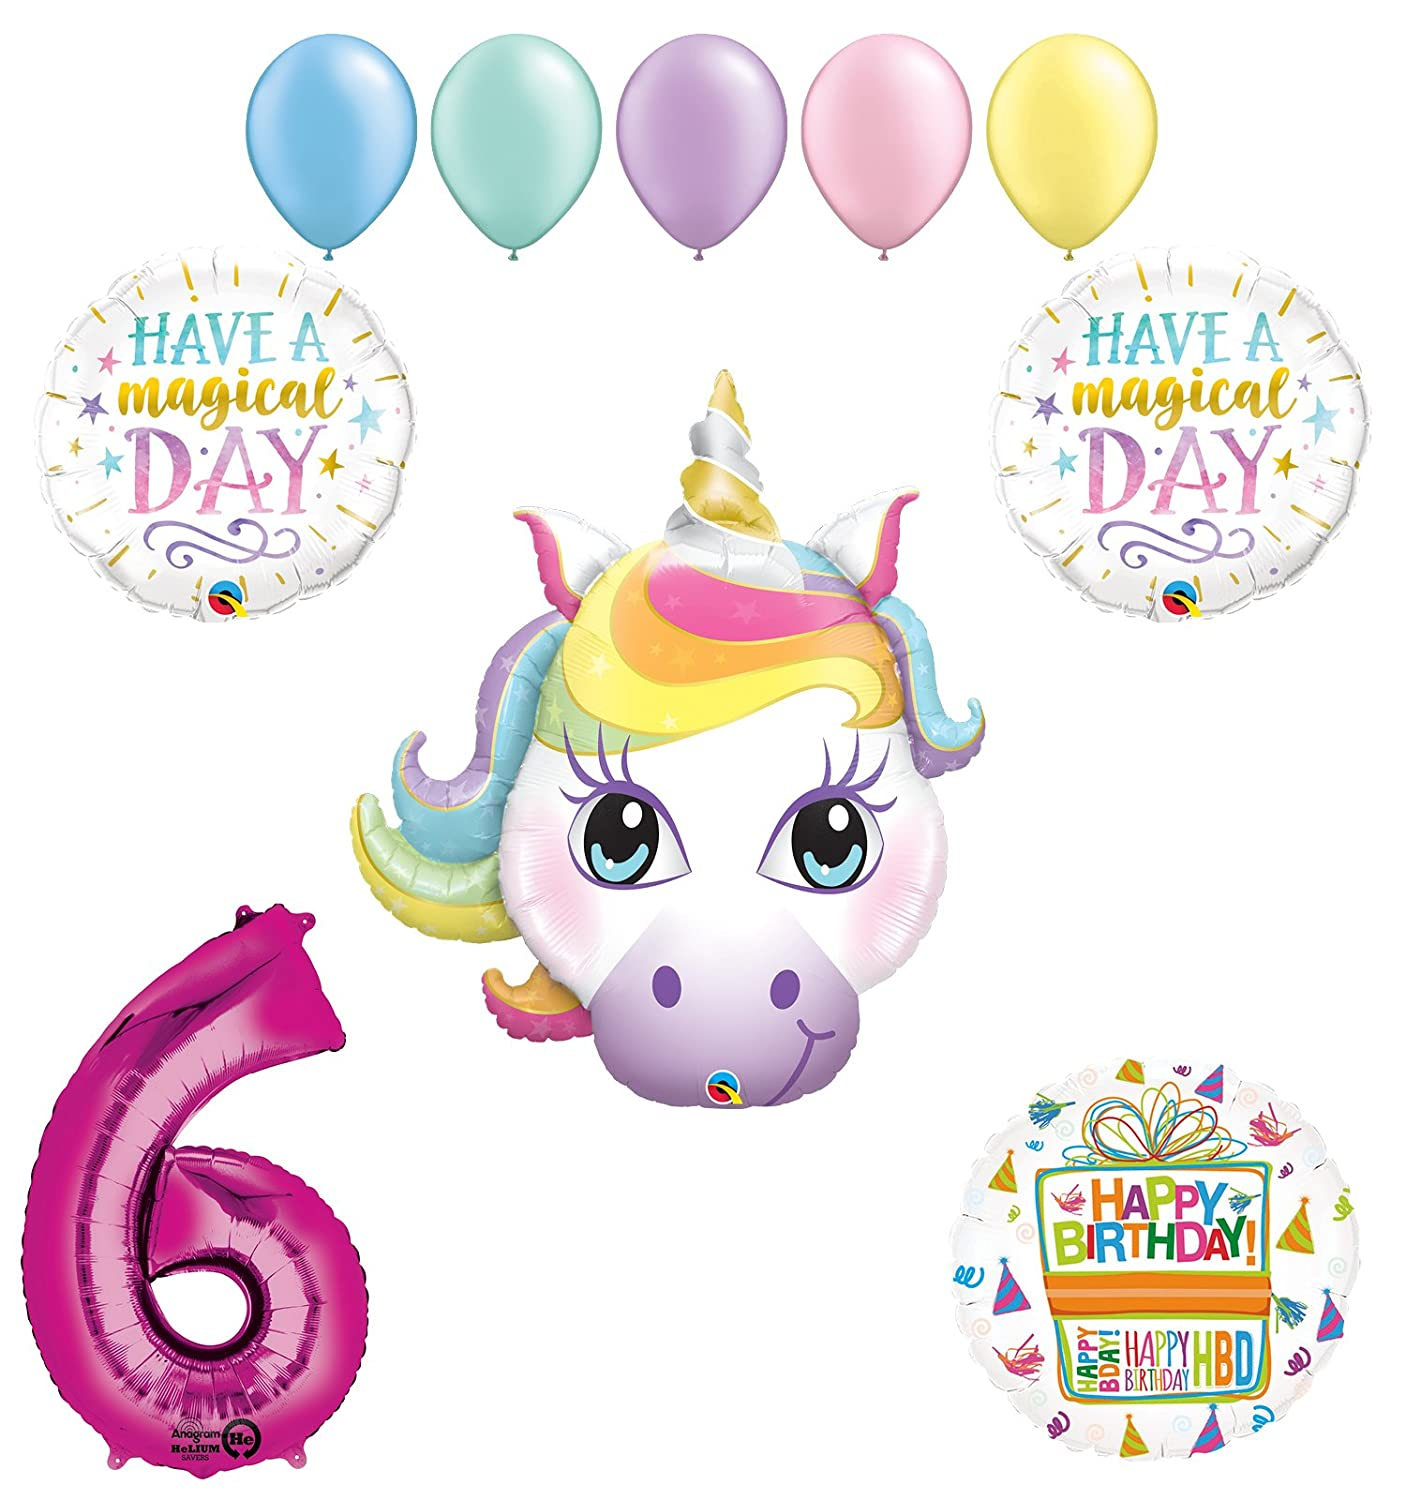 Magical Unicorn 6th Birthday Party Supplies and Balloon Decorations Mayflower